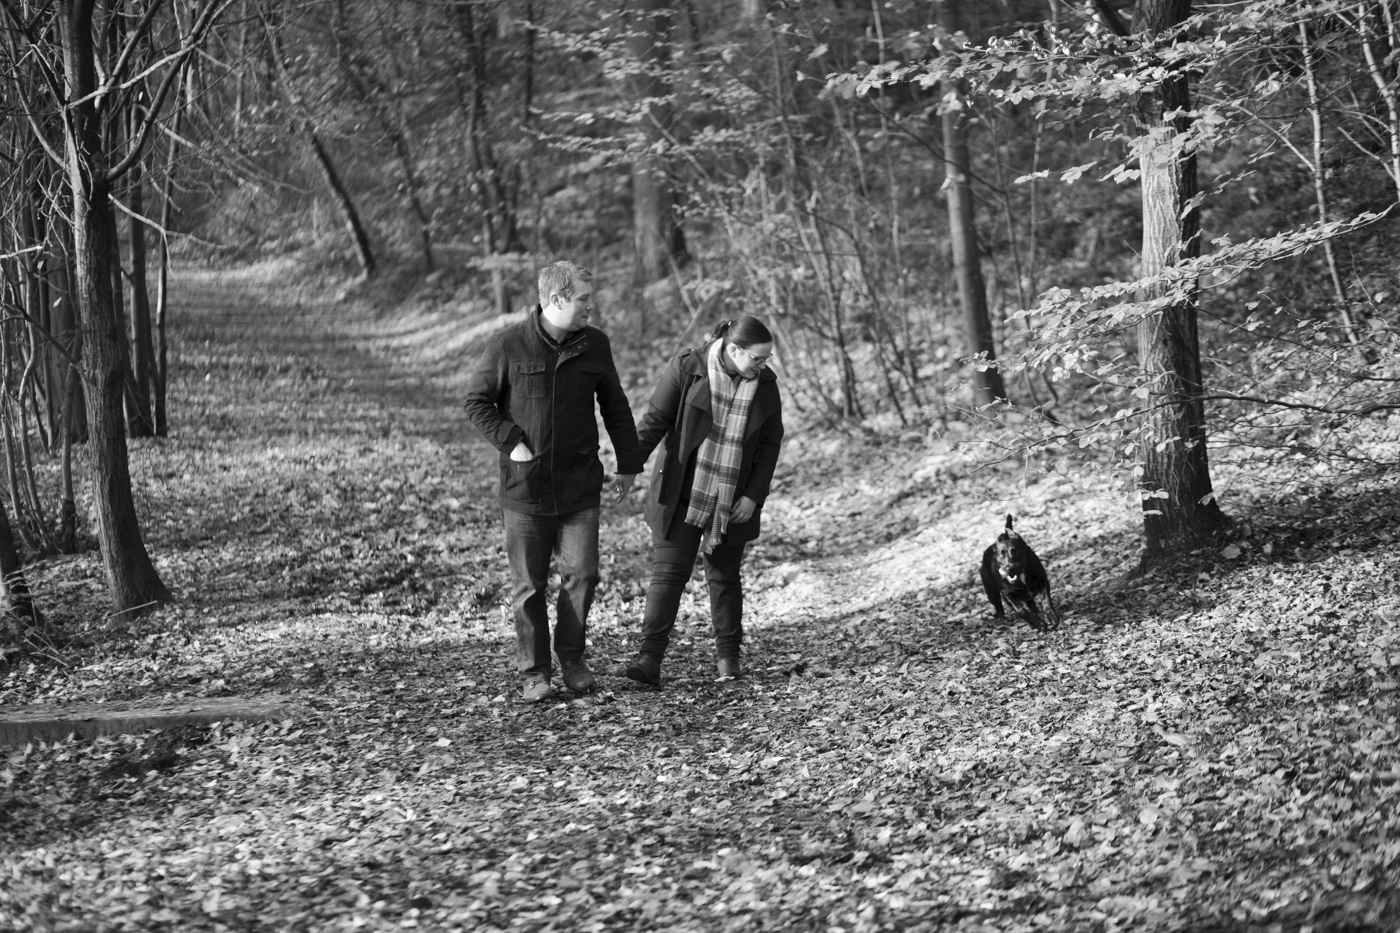 Man and woman with dog strolling through woods by Joshua Wyborn Photographic